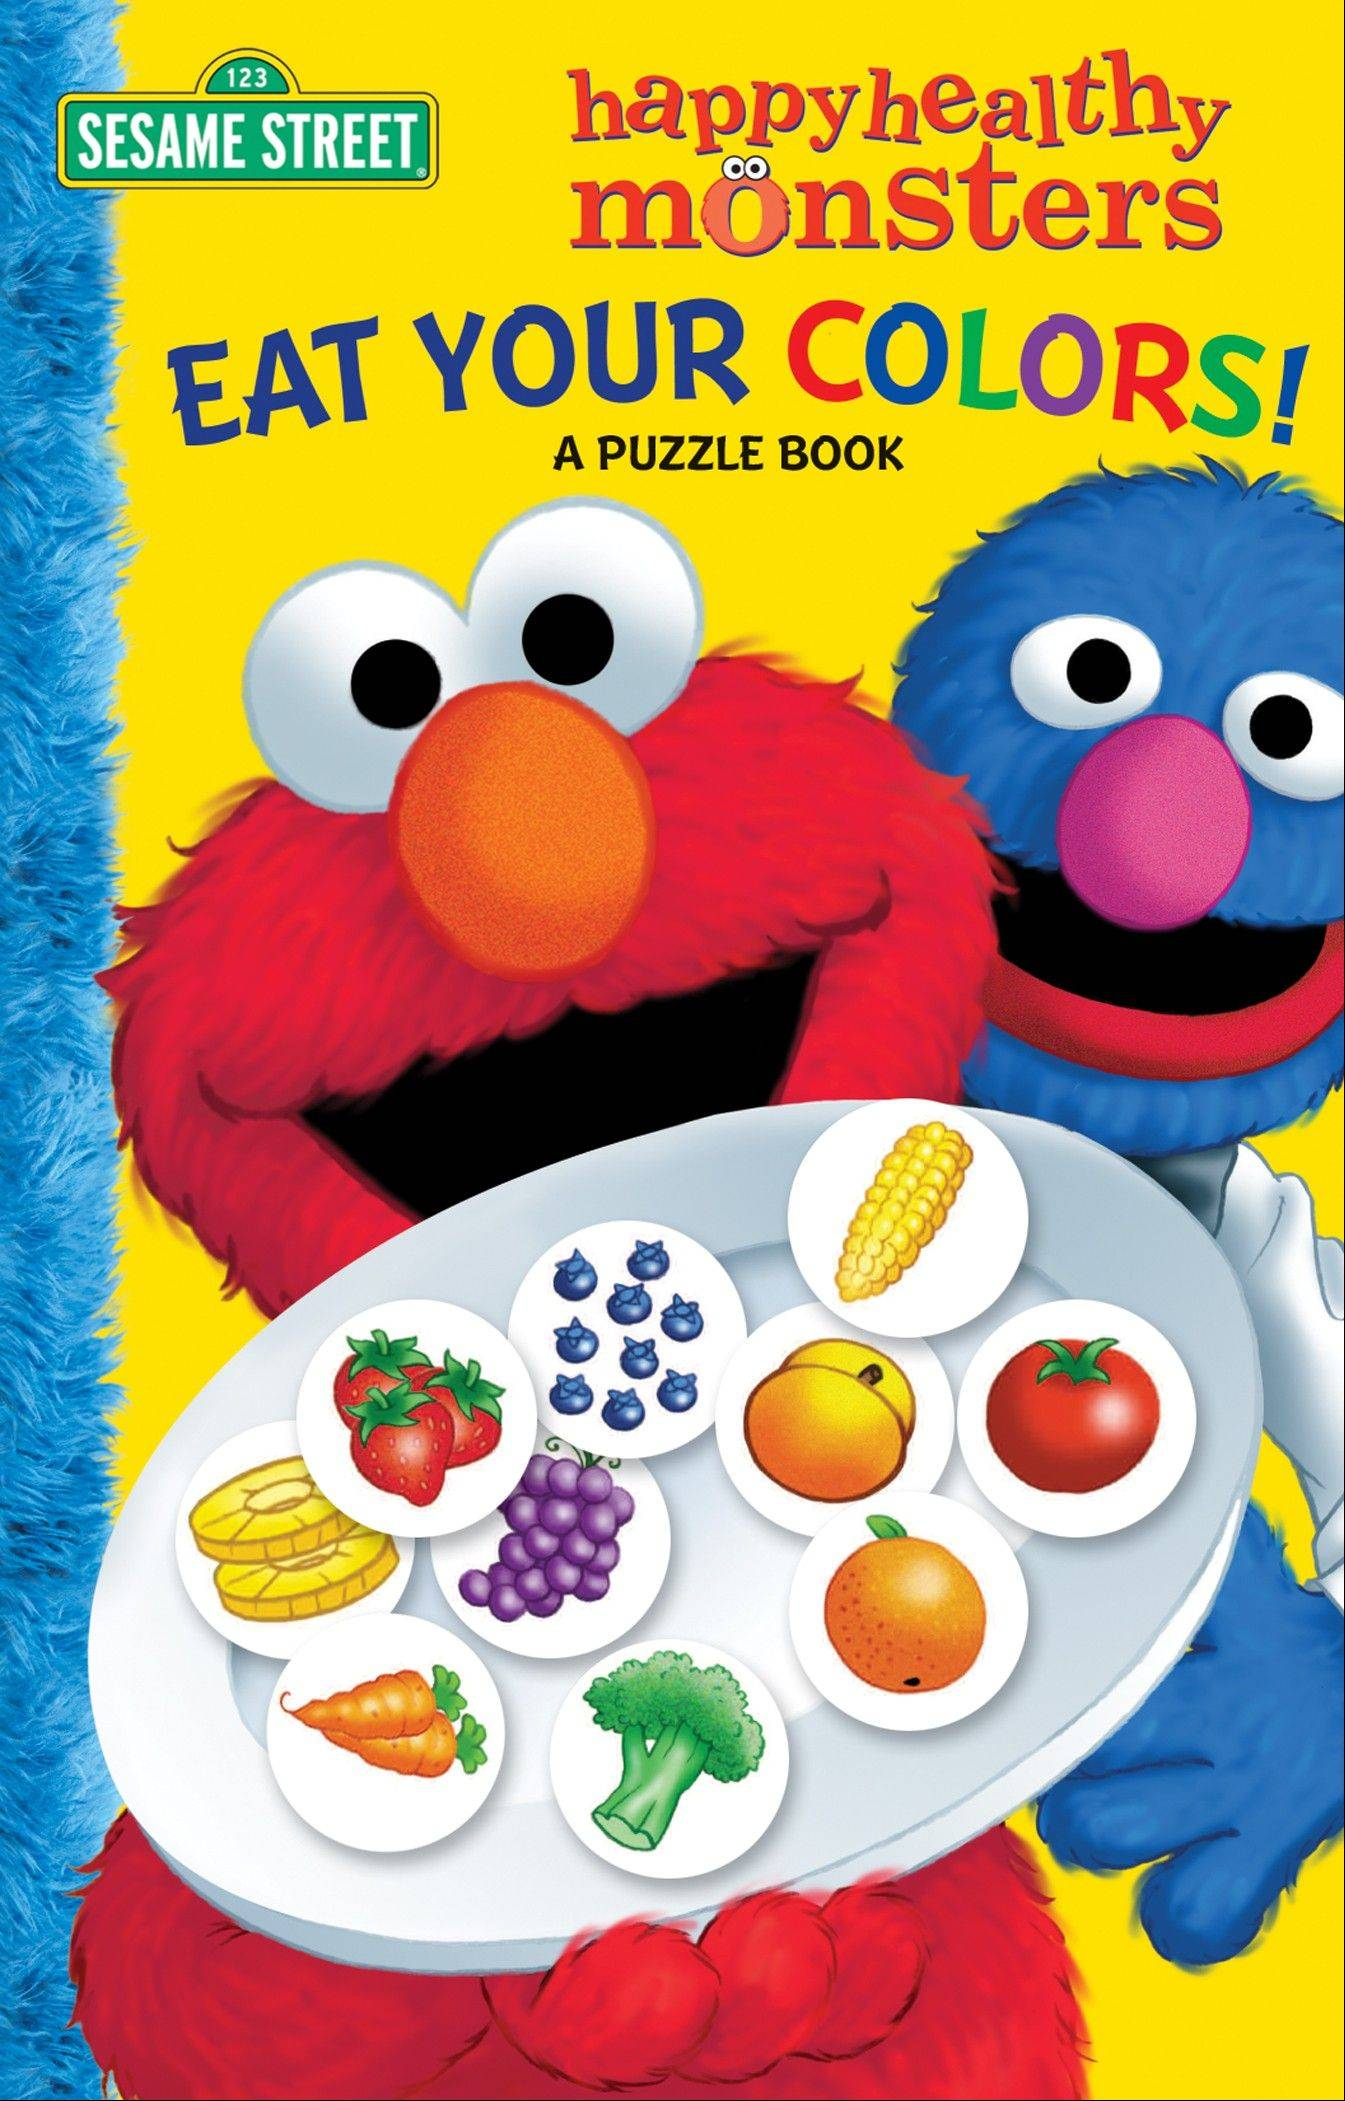 """Eat Your Colors! A Puzzle Book"" by Sarah Albee and Joe Matthieu."